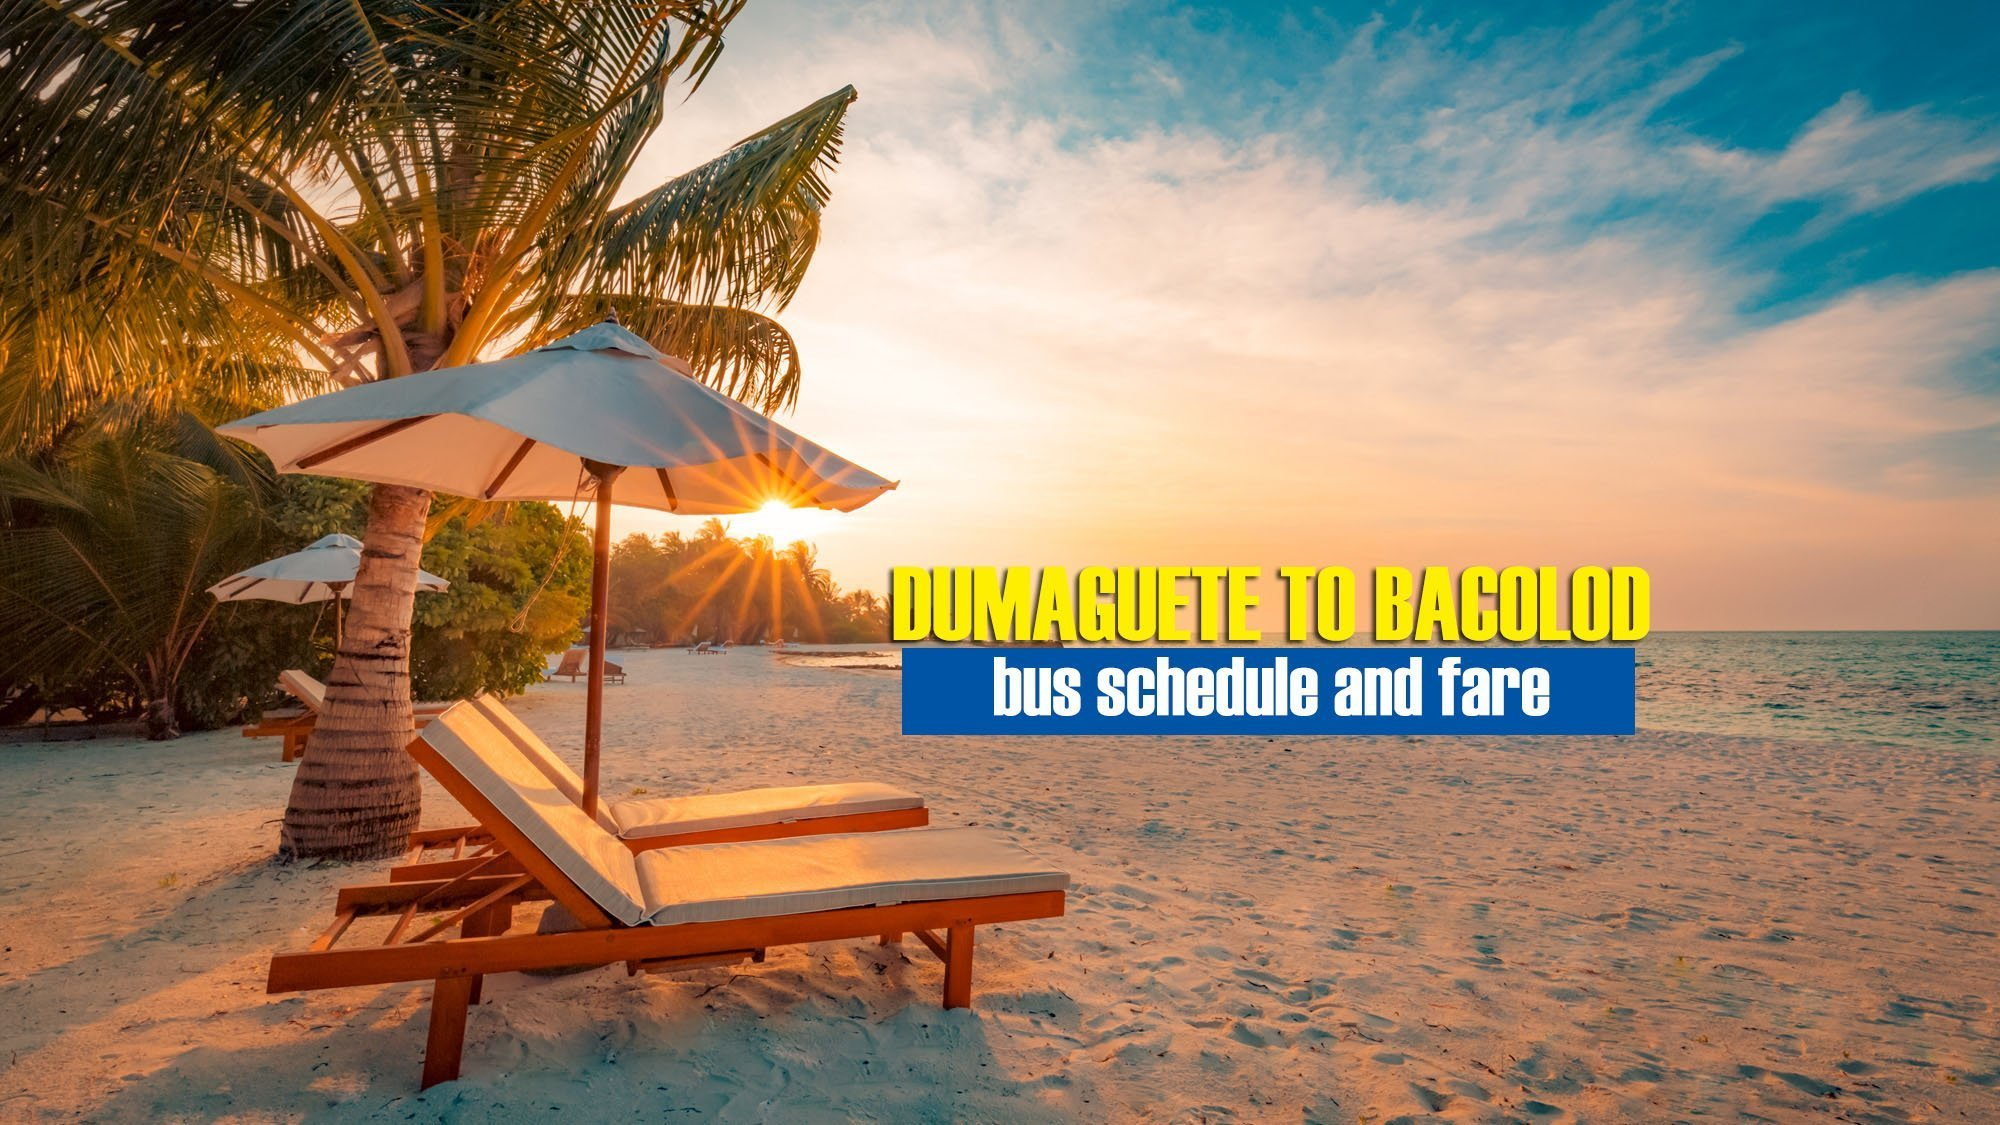 Dumaguete to Bacolod: 2019 Bus Schedule & Fare